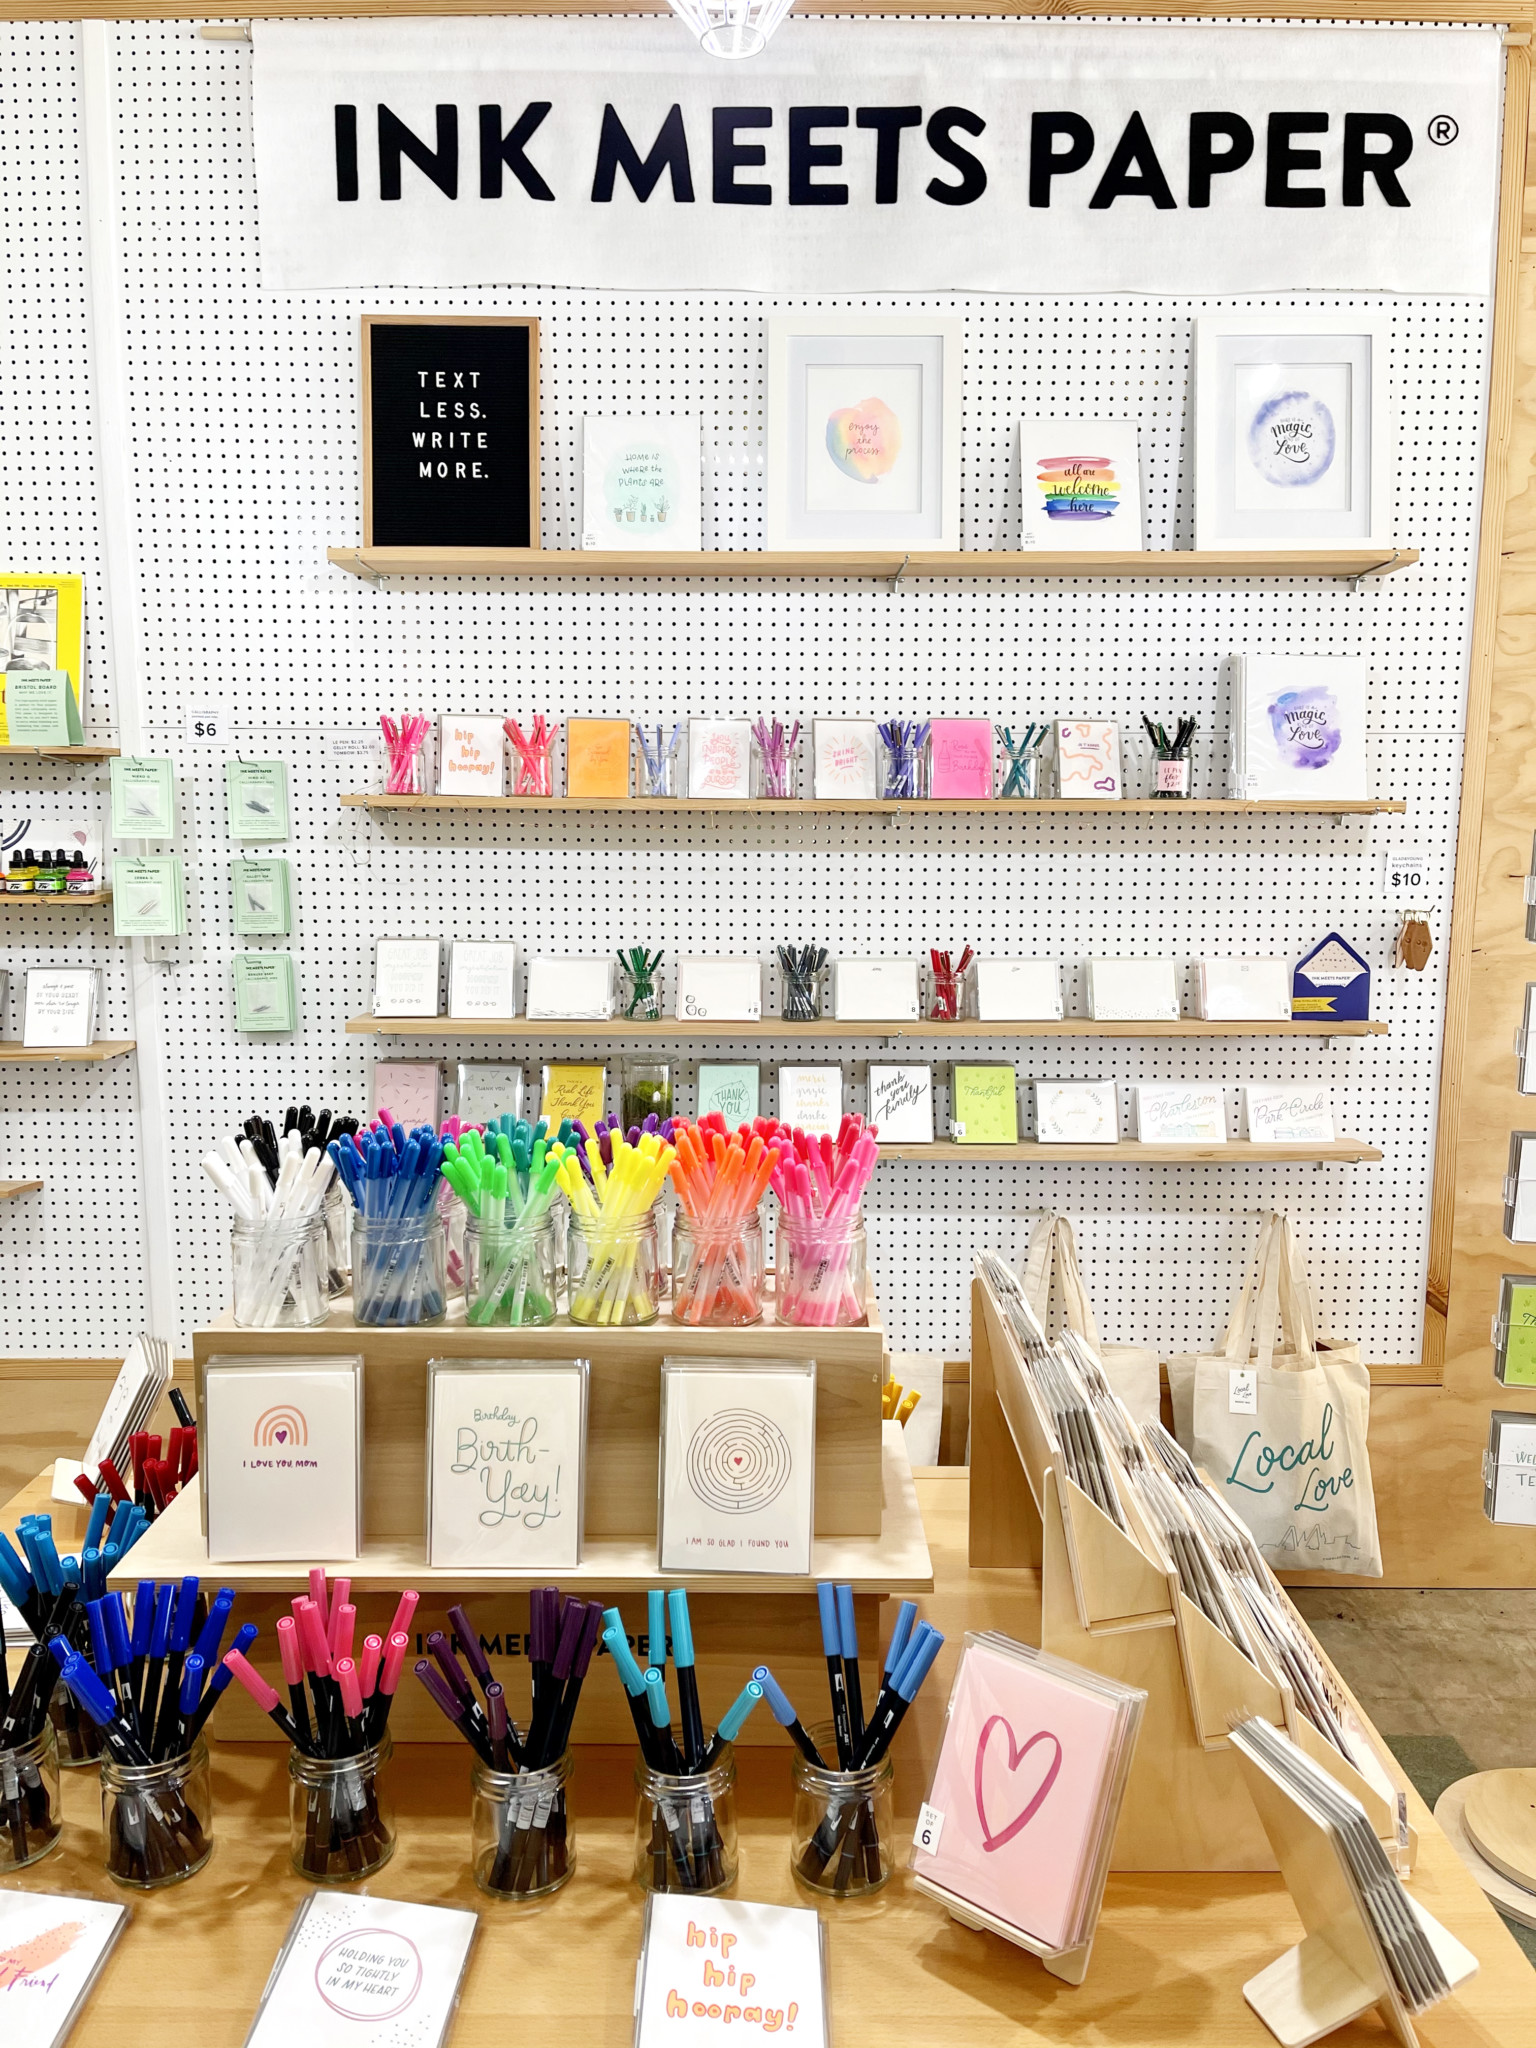 INK MEETS PAPER Flagship Store